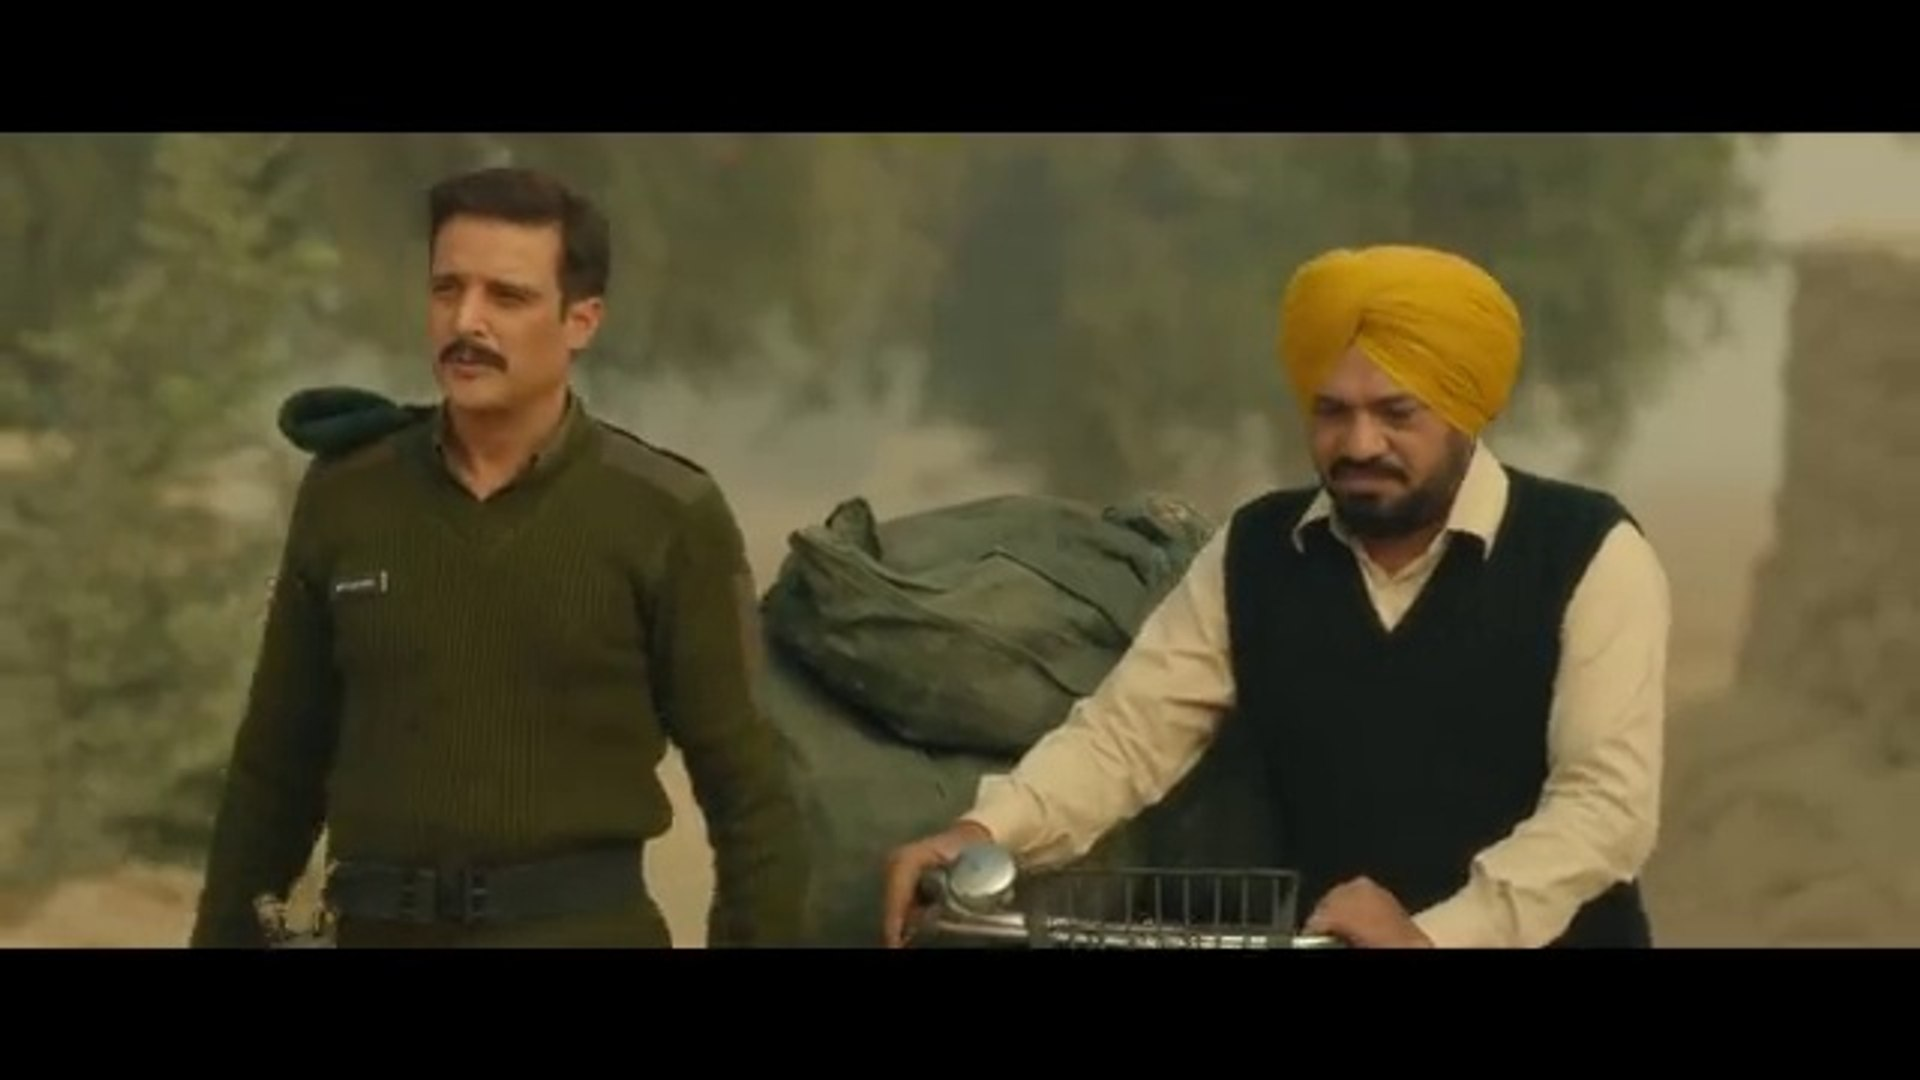 Daana Paani Punjabi Movie Trailer Jimmy Sheirgill Simi Chahal Releasing 4th May Hd Video